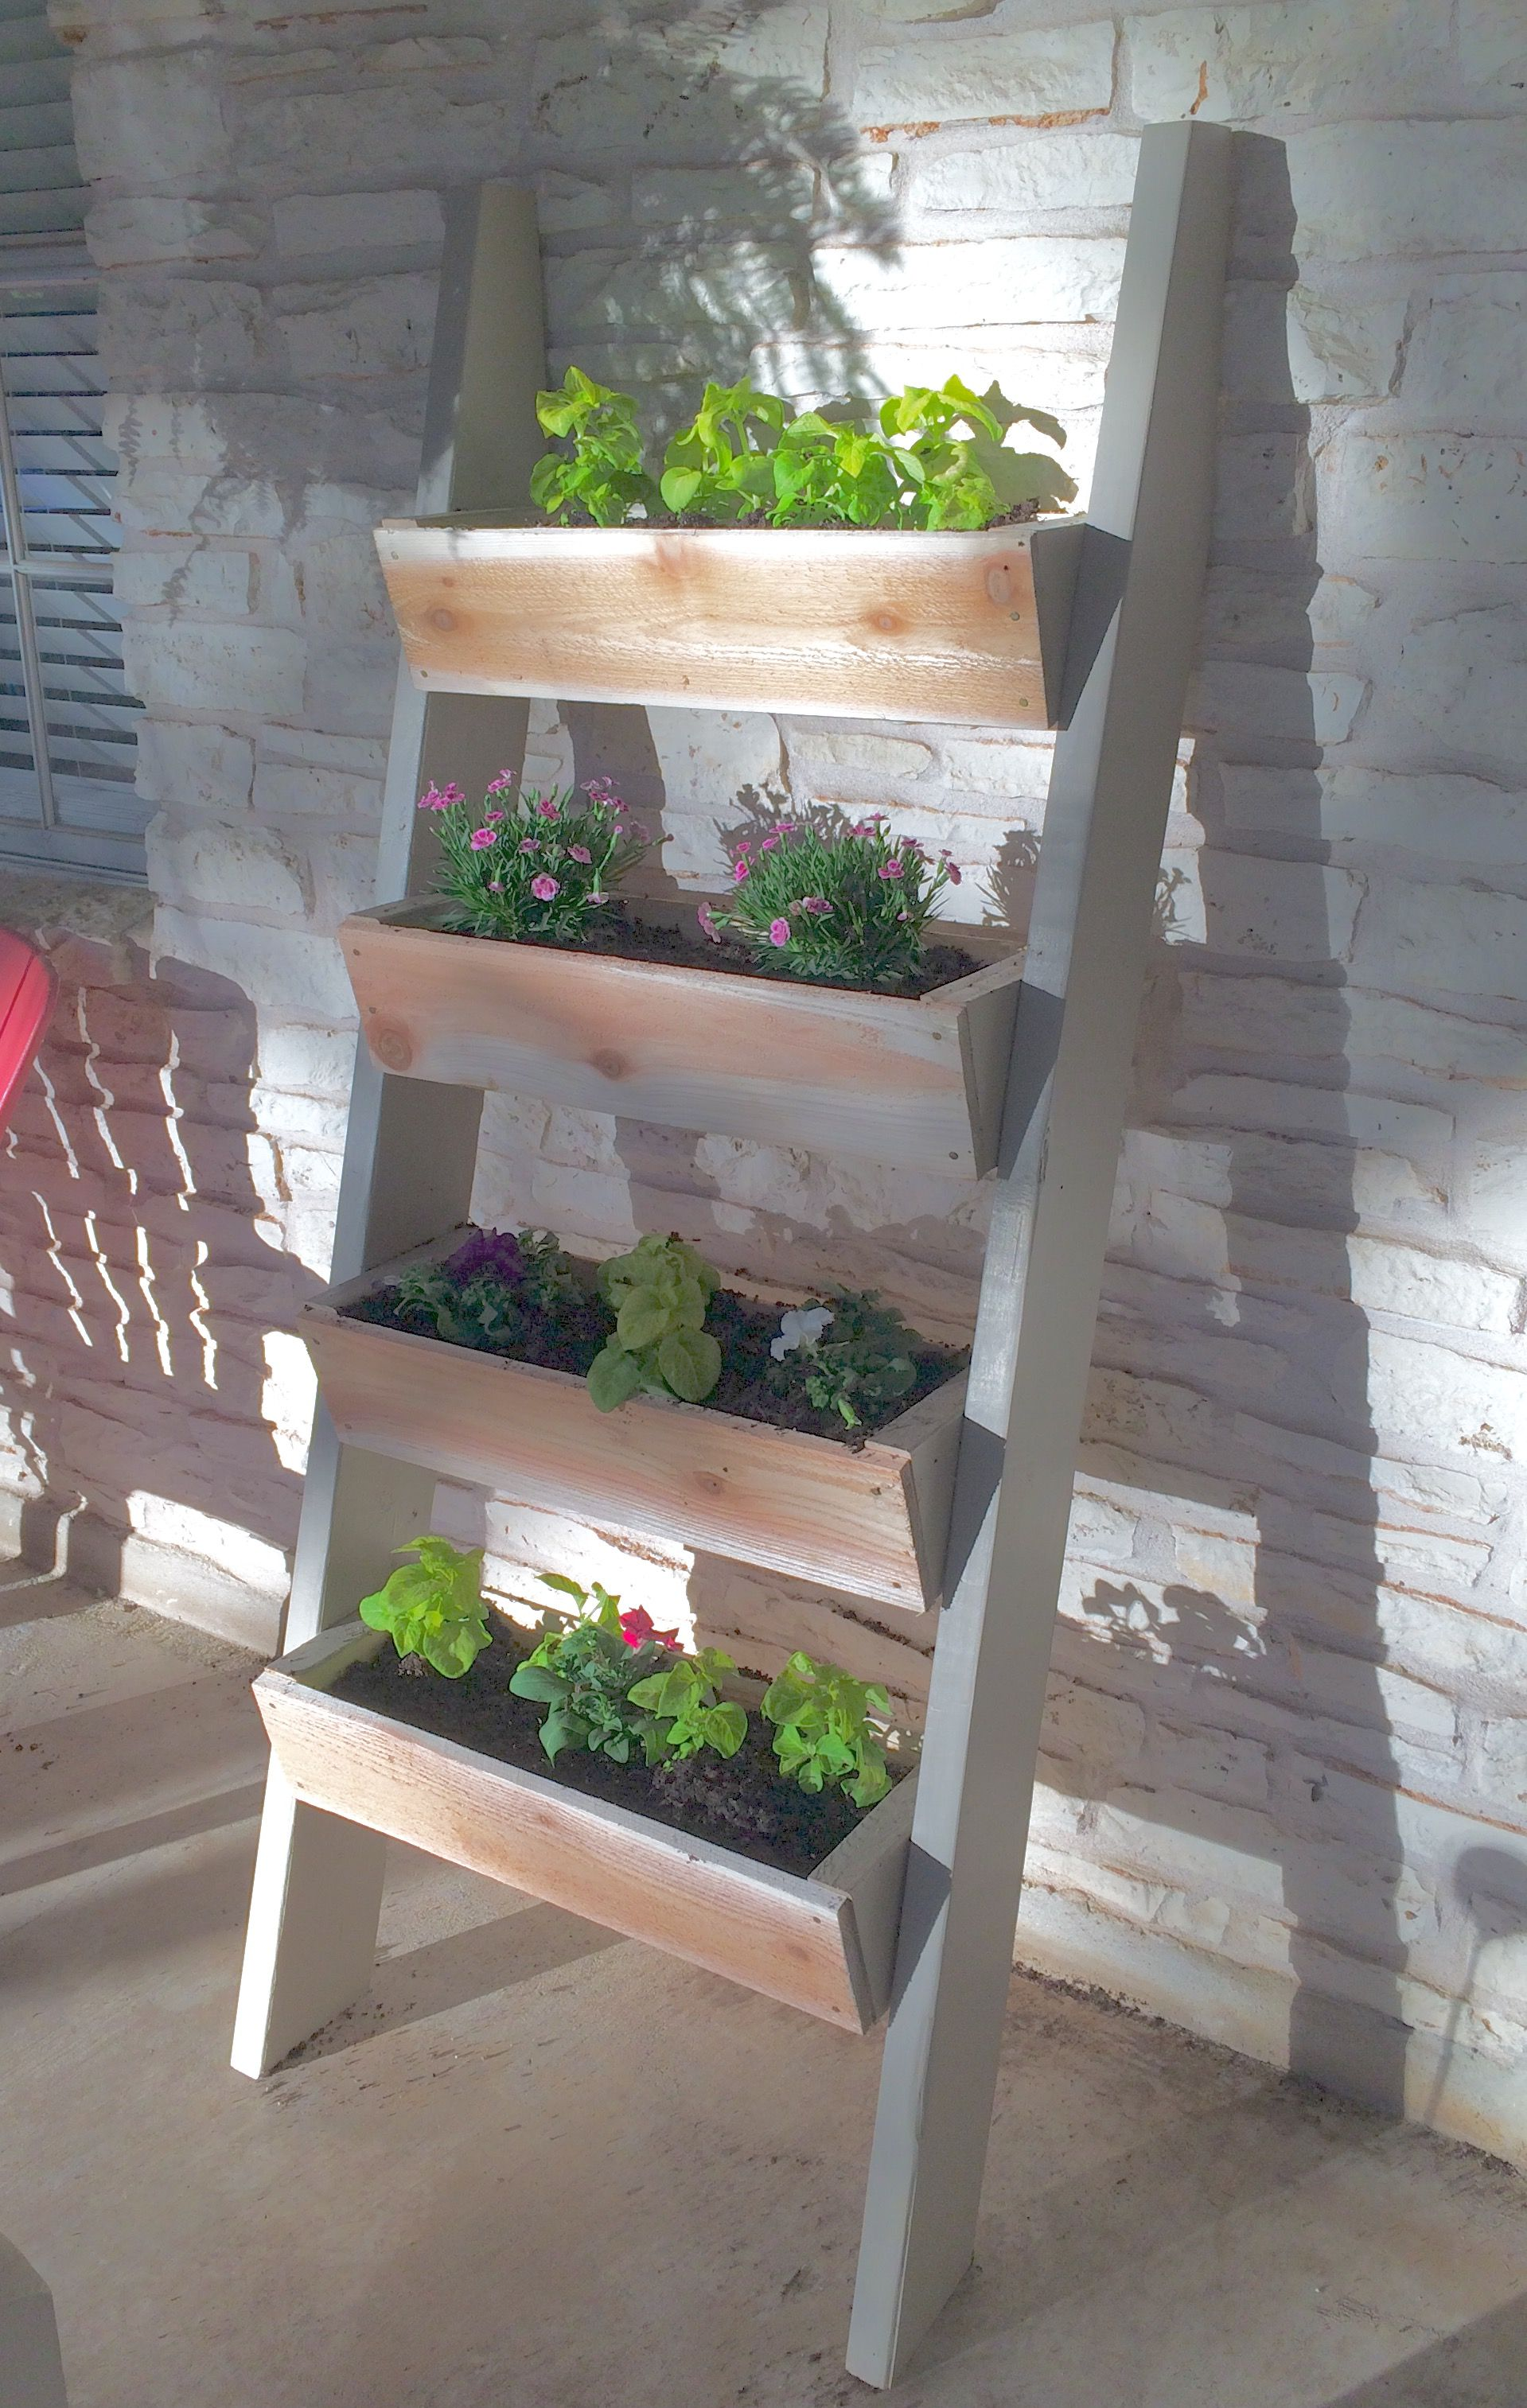 Diy Garden Window Plans Easy Ladder Planter Ana White Plans Diy How To Build